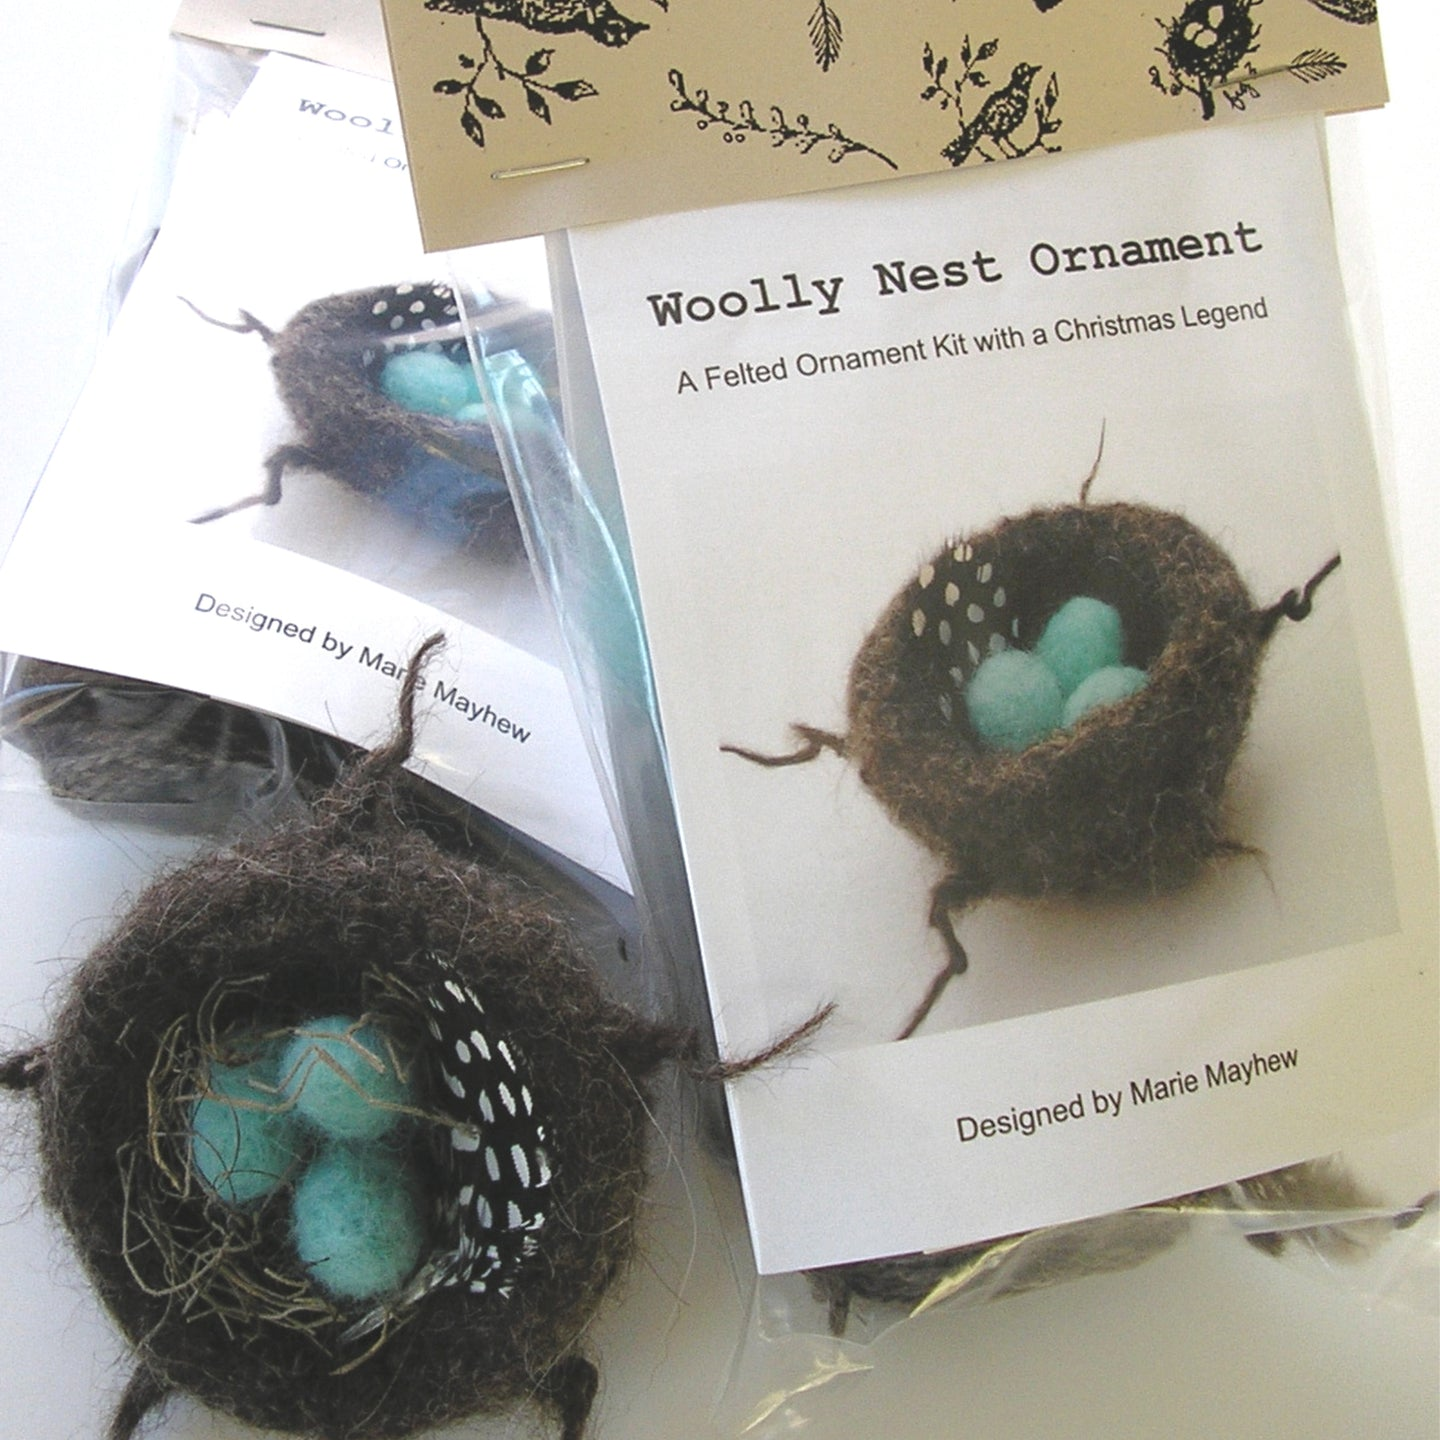 marie mayhew's woolly nest & eggs ornament kit